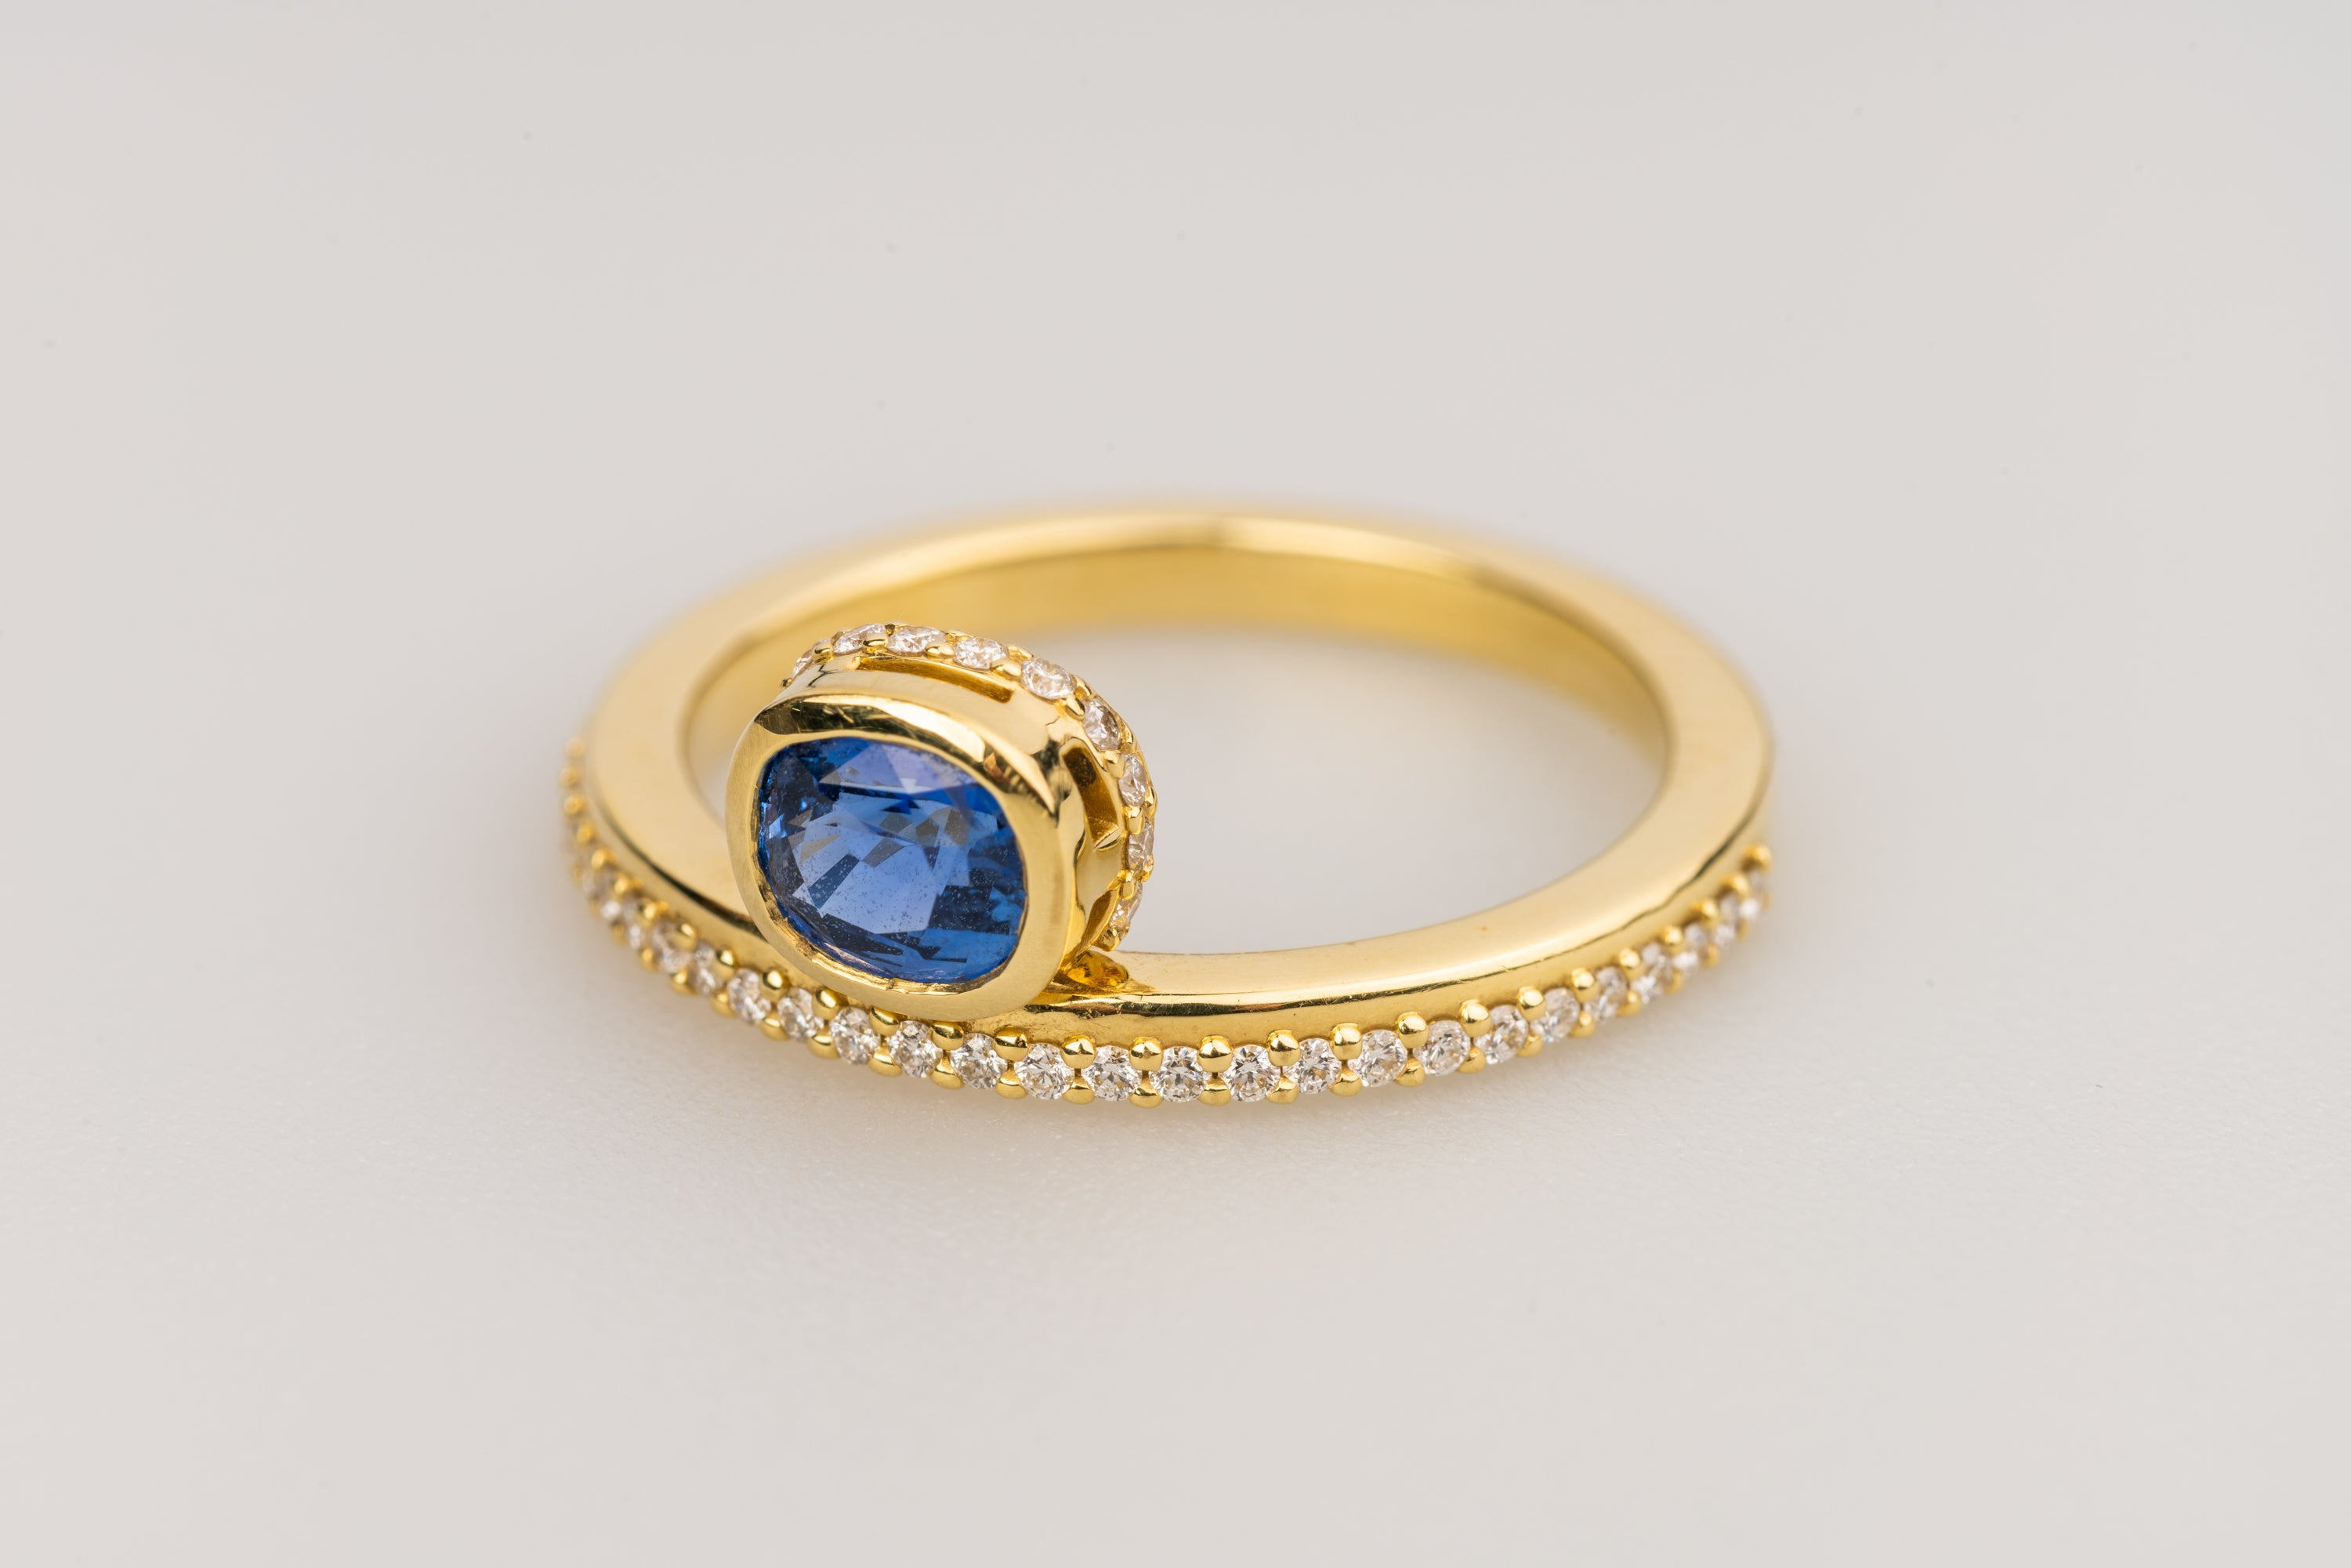 Blue Sapphire in 18k Yellow Gold Off-Centered Ring with White Diamonds